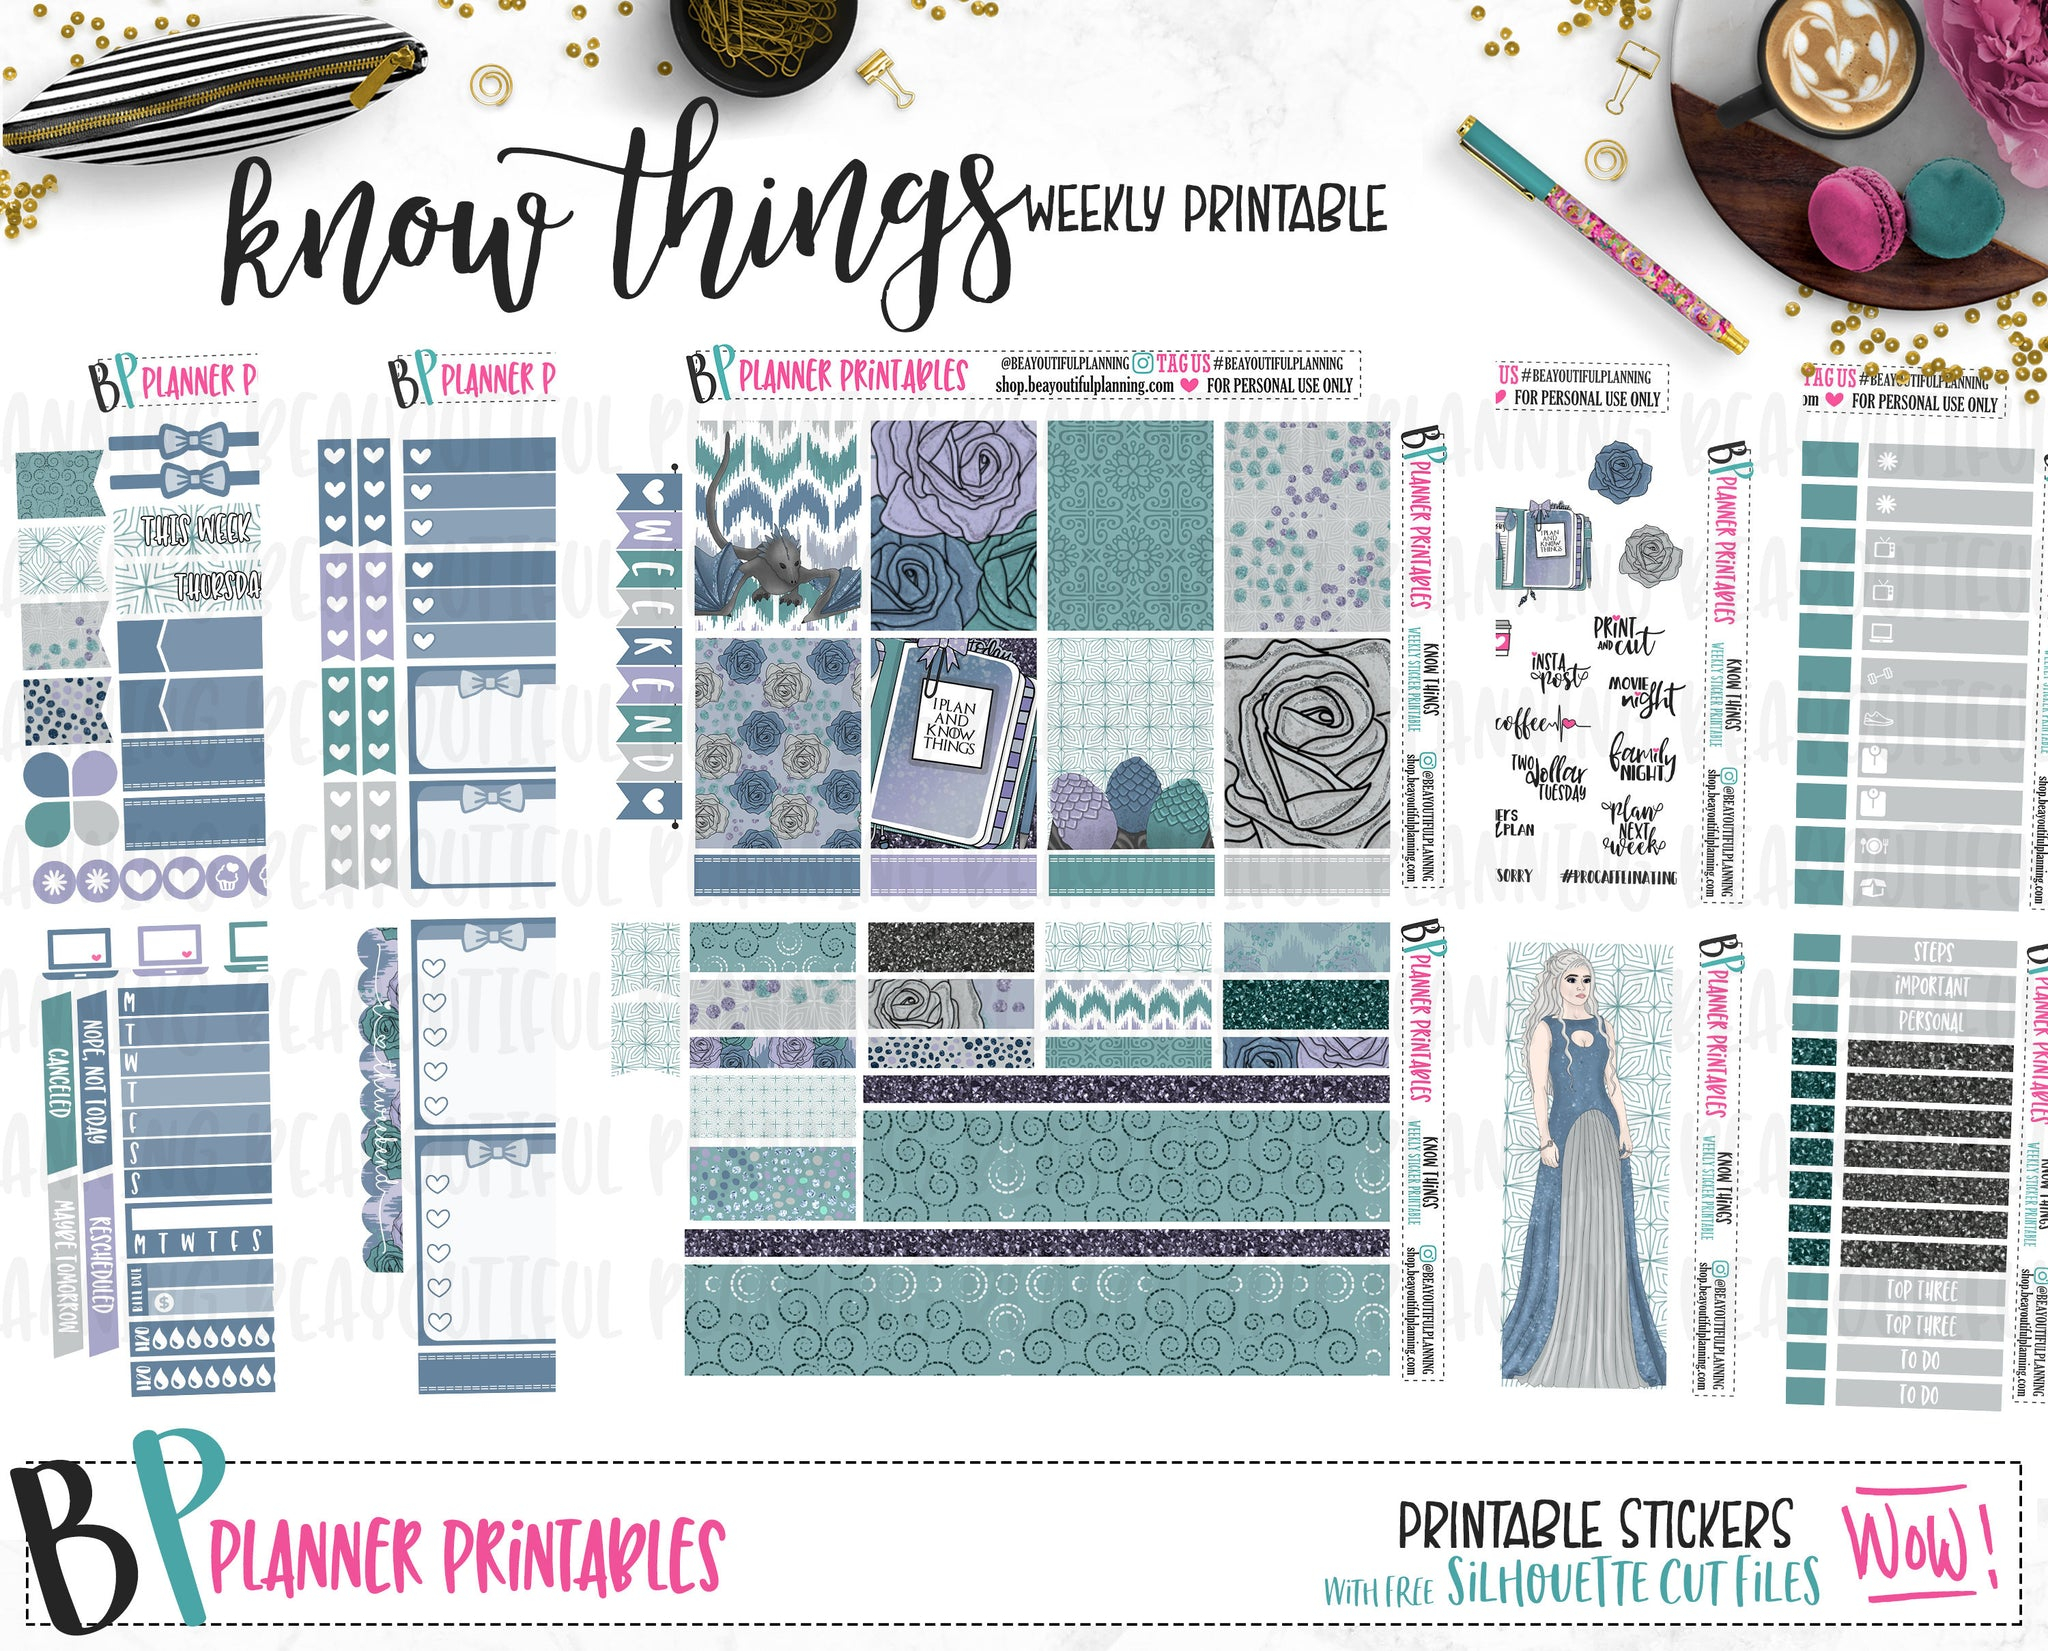 Know Things Weekly Printable